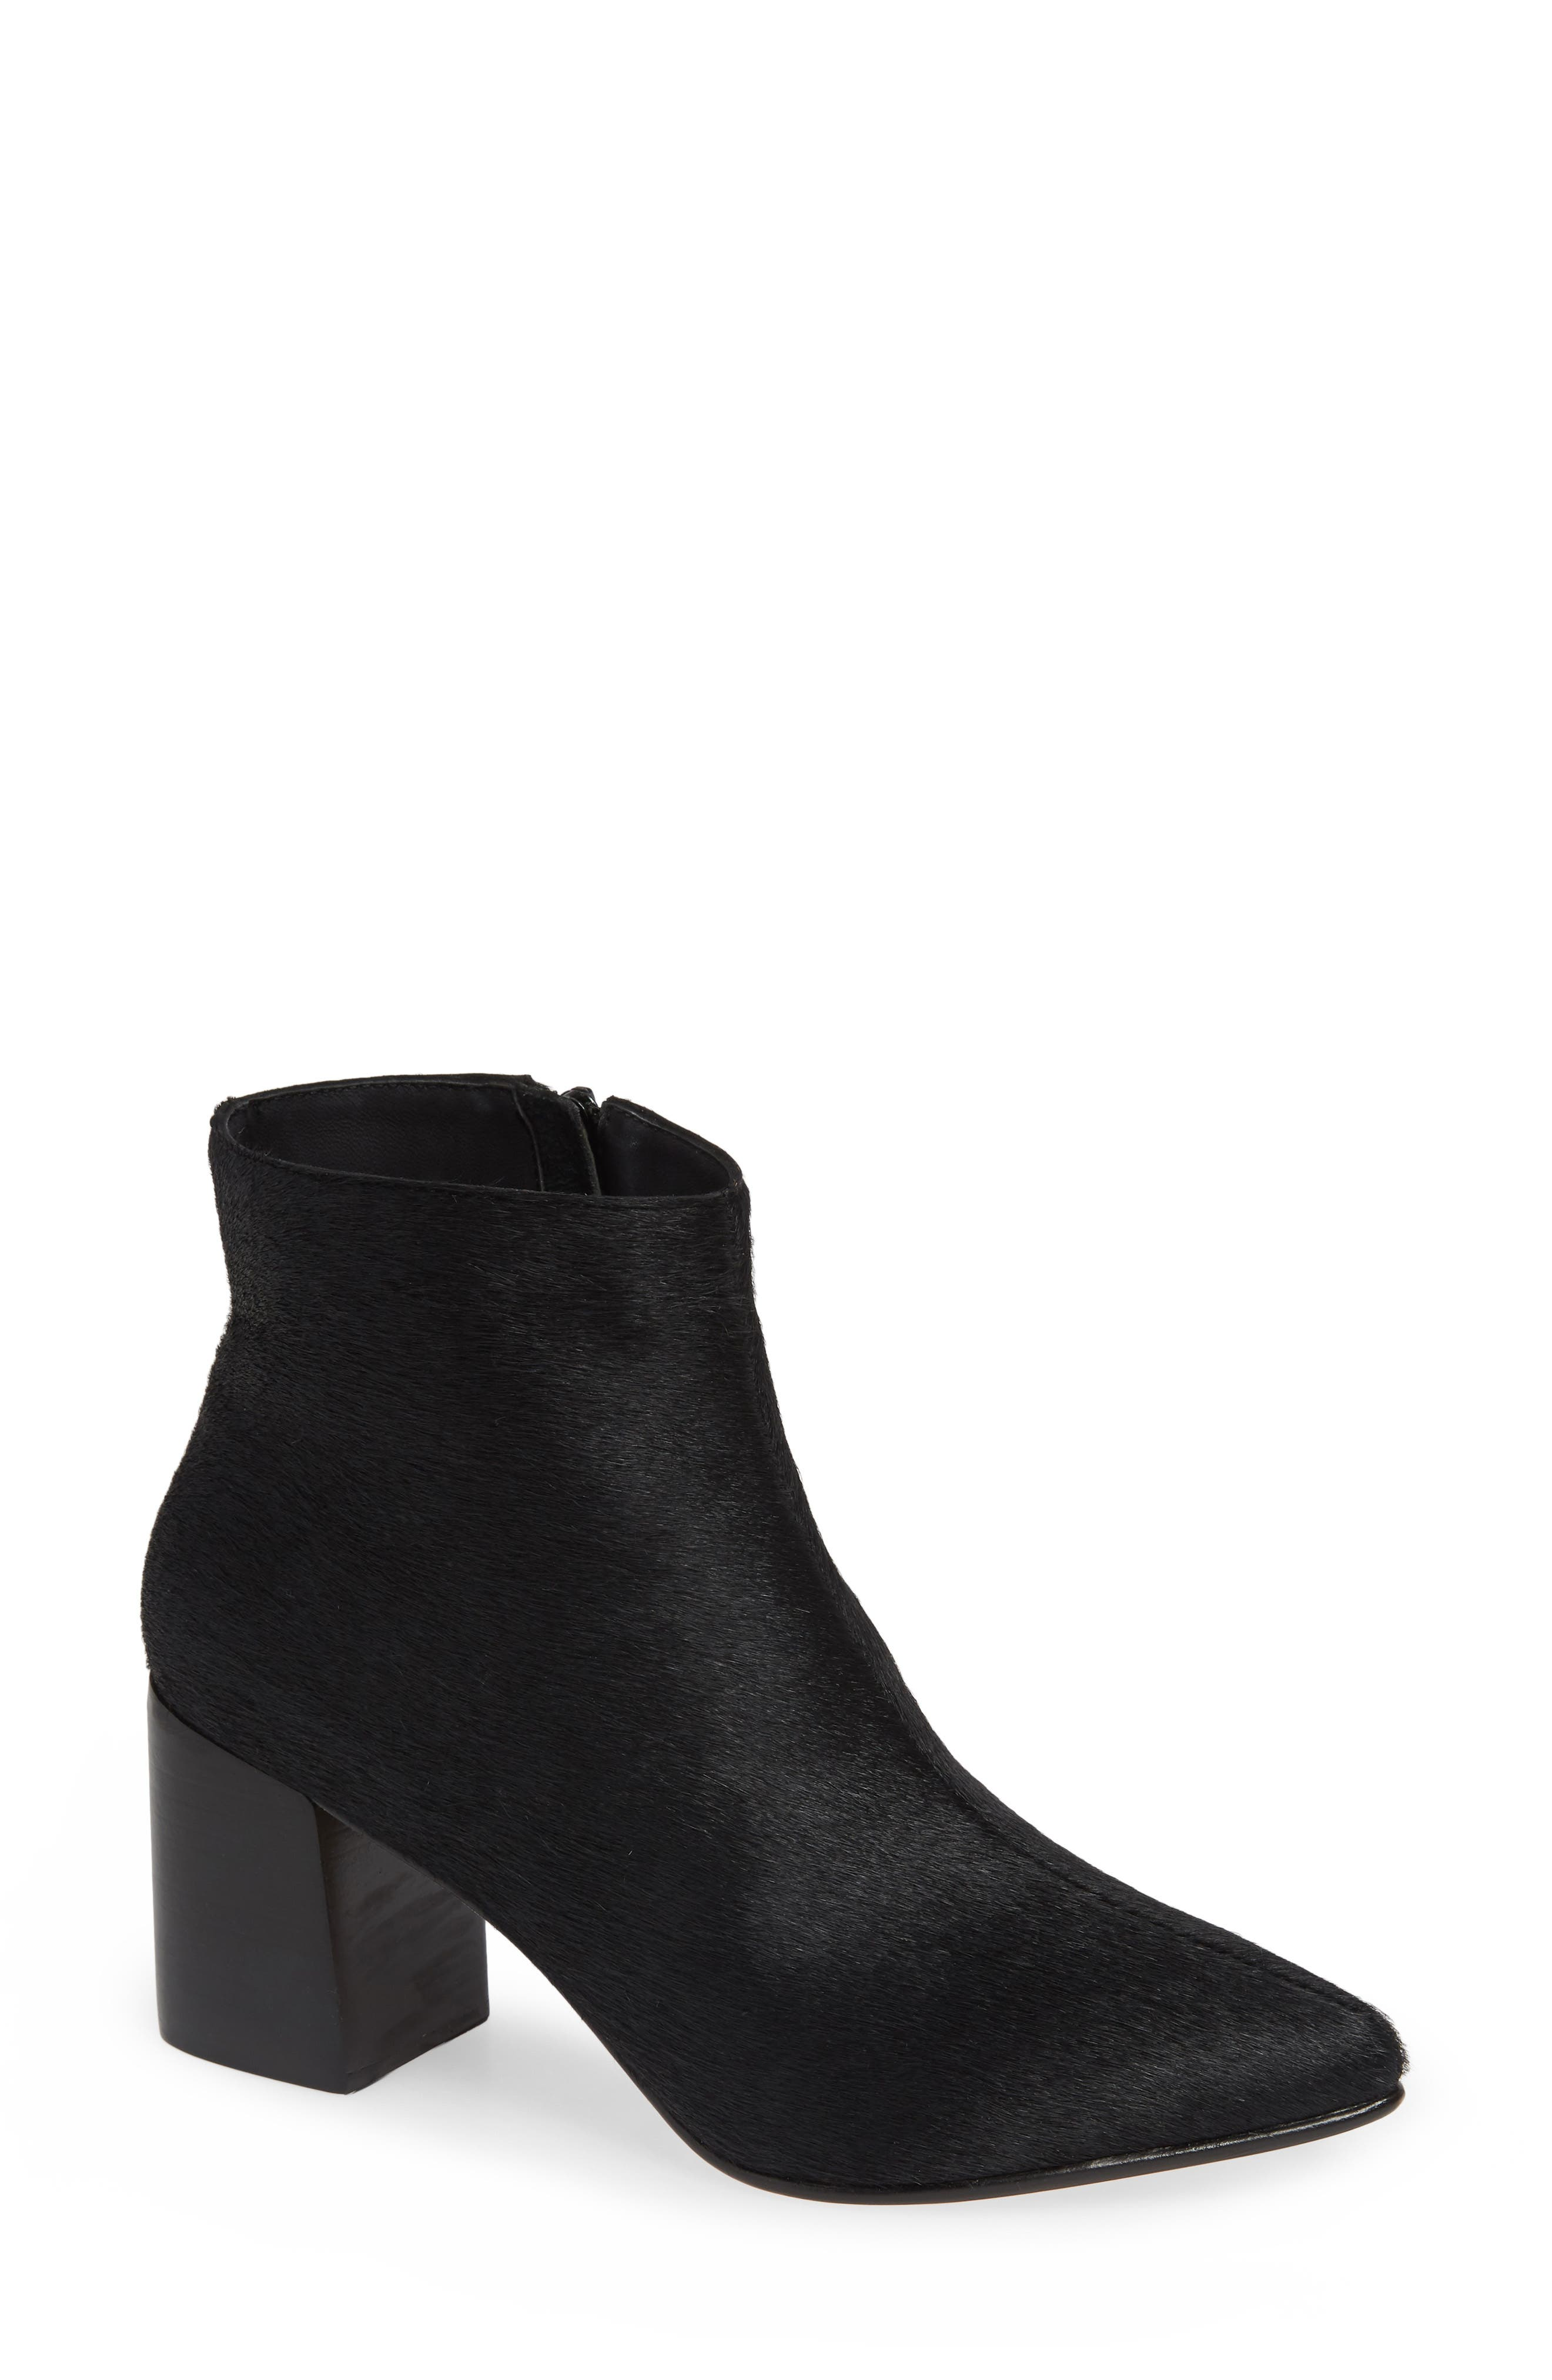 Huma Blanco Vania Genuine Calf Hair Pointed Toe Bootie - Black